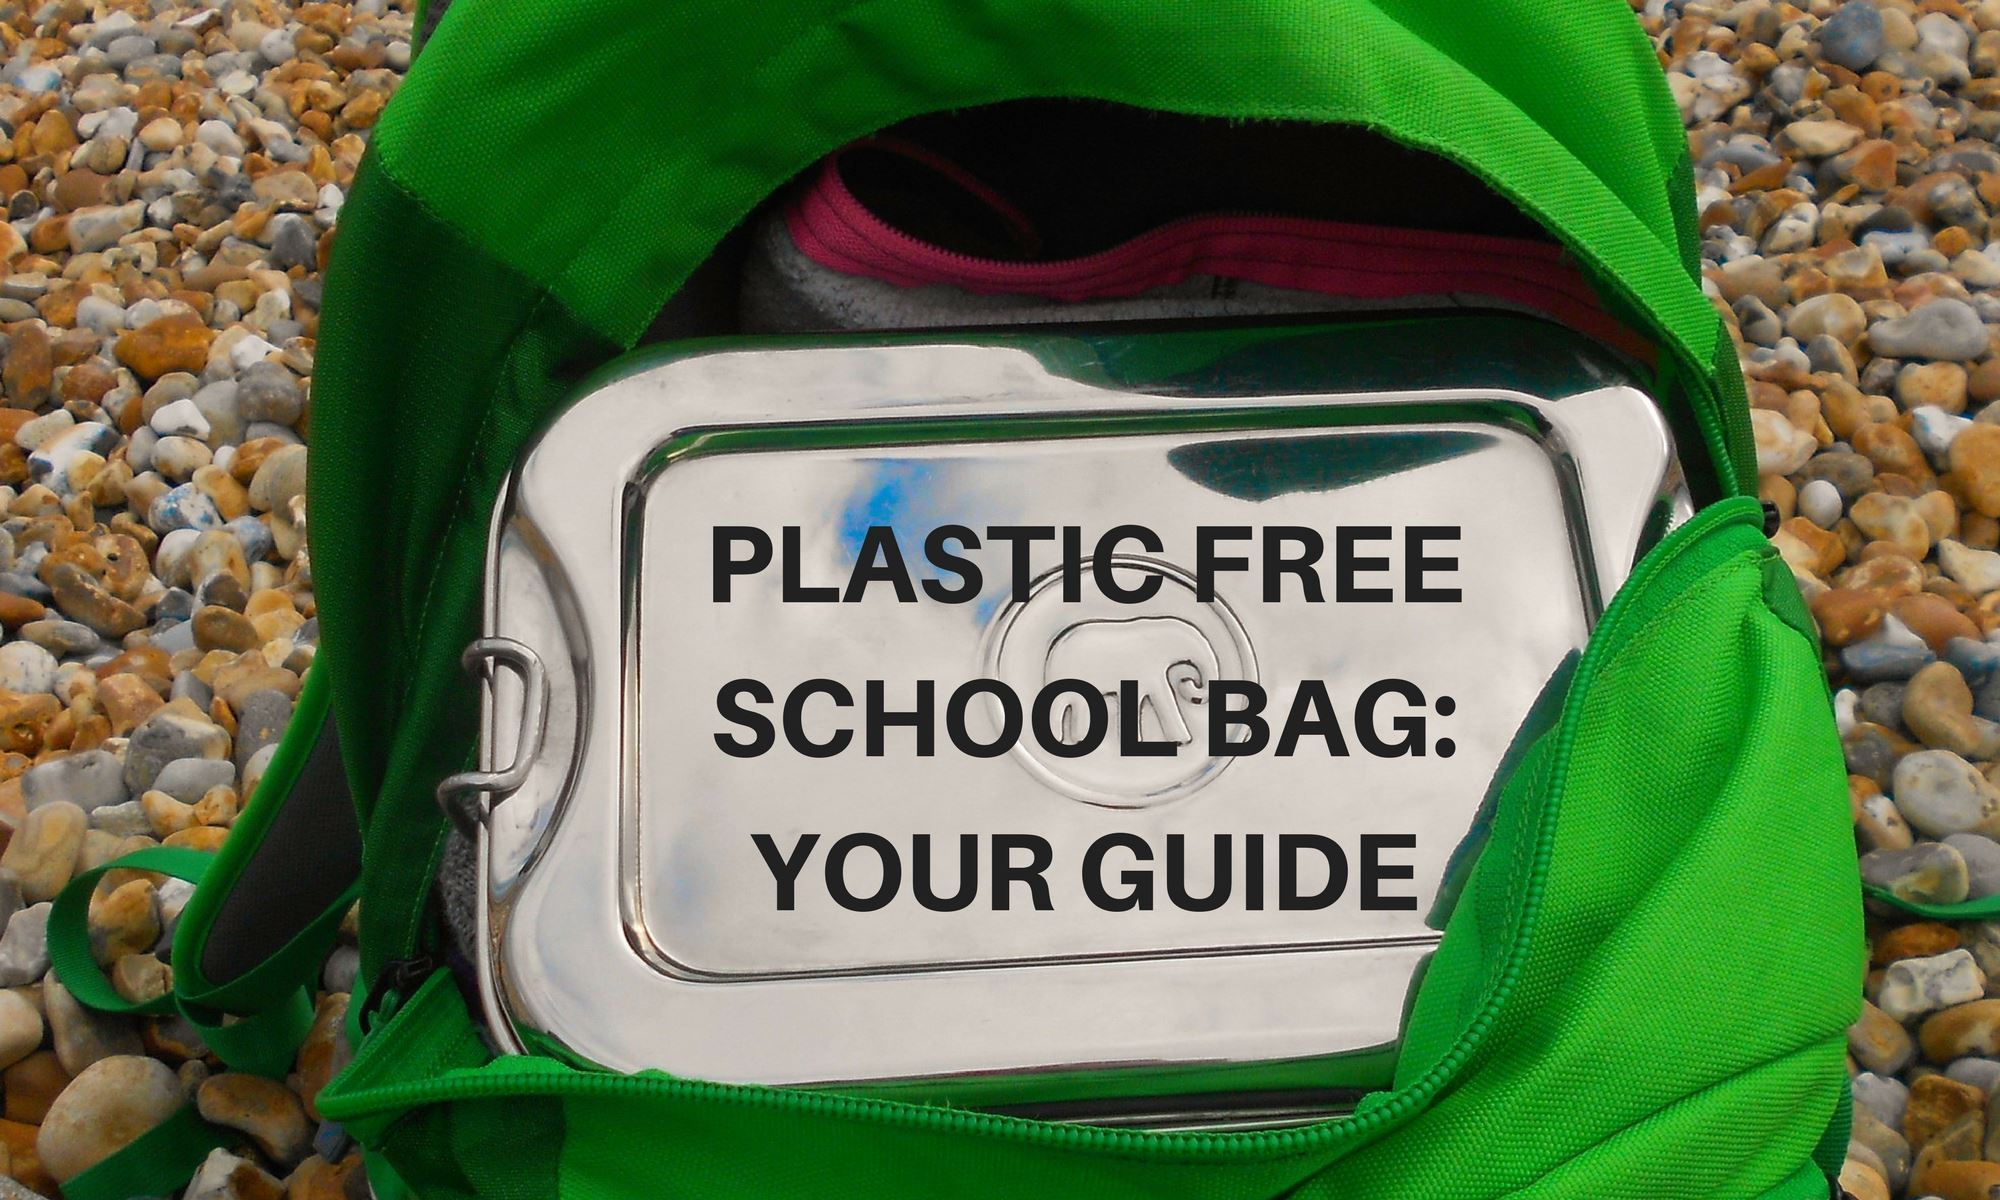 Your Guide to a Plastic Free School Bag